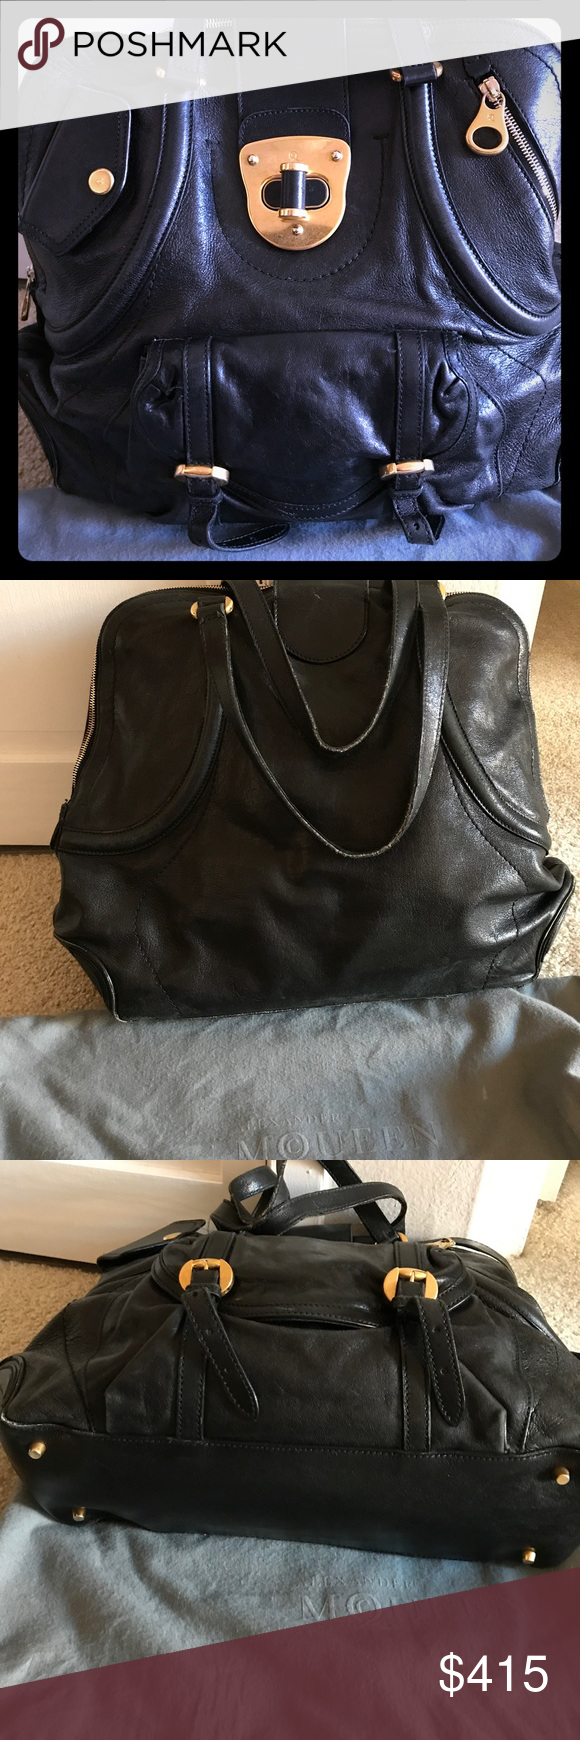 Alexander McQueen Handbag Gently used black bag with gold hardware! Very sturdy and spacious. Alexander McQueen Bags Shoulder Bags